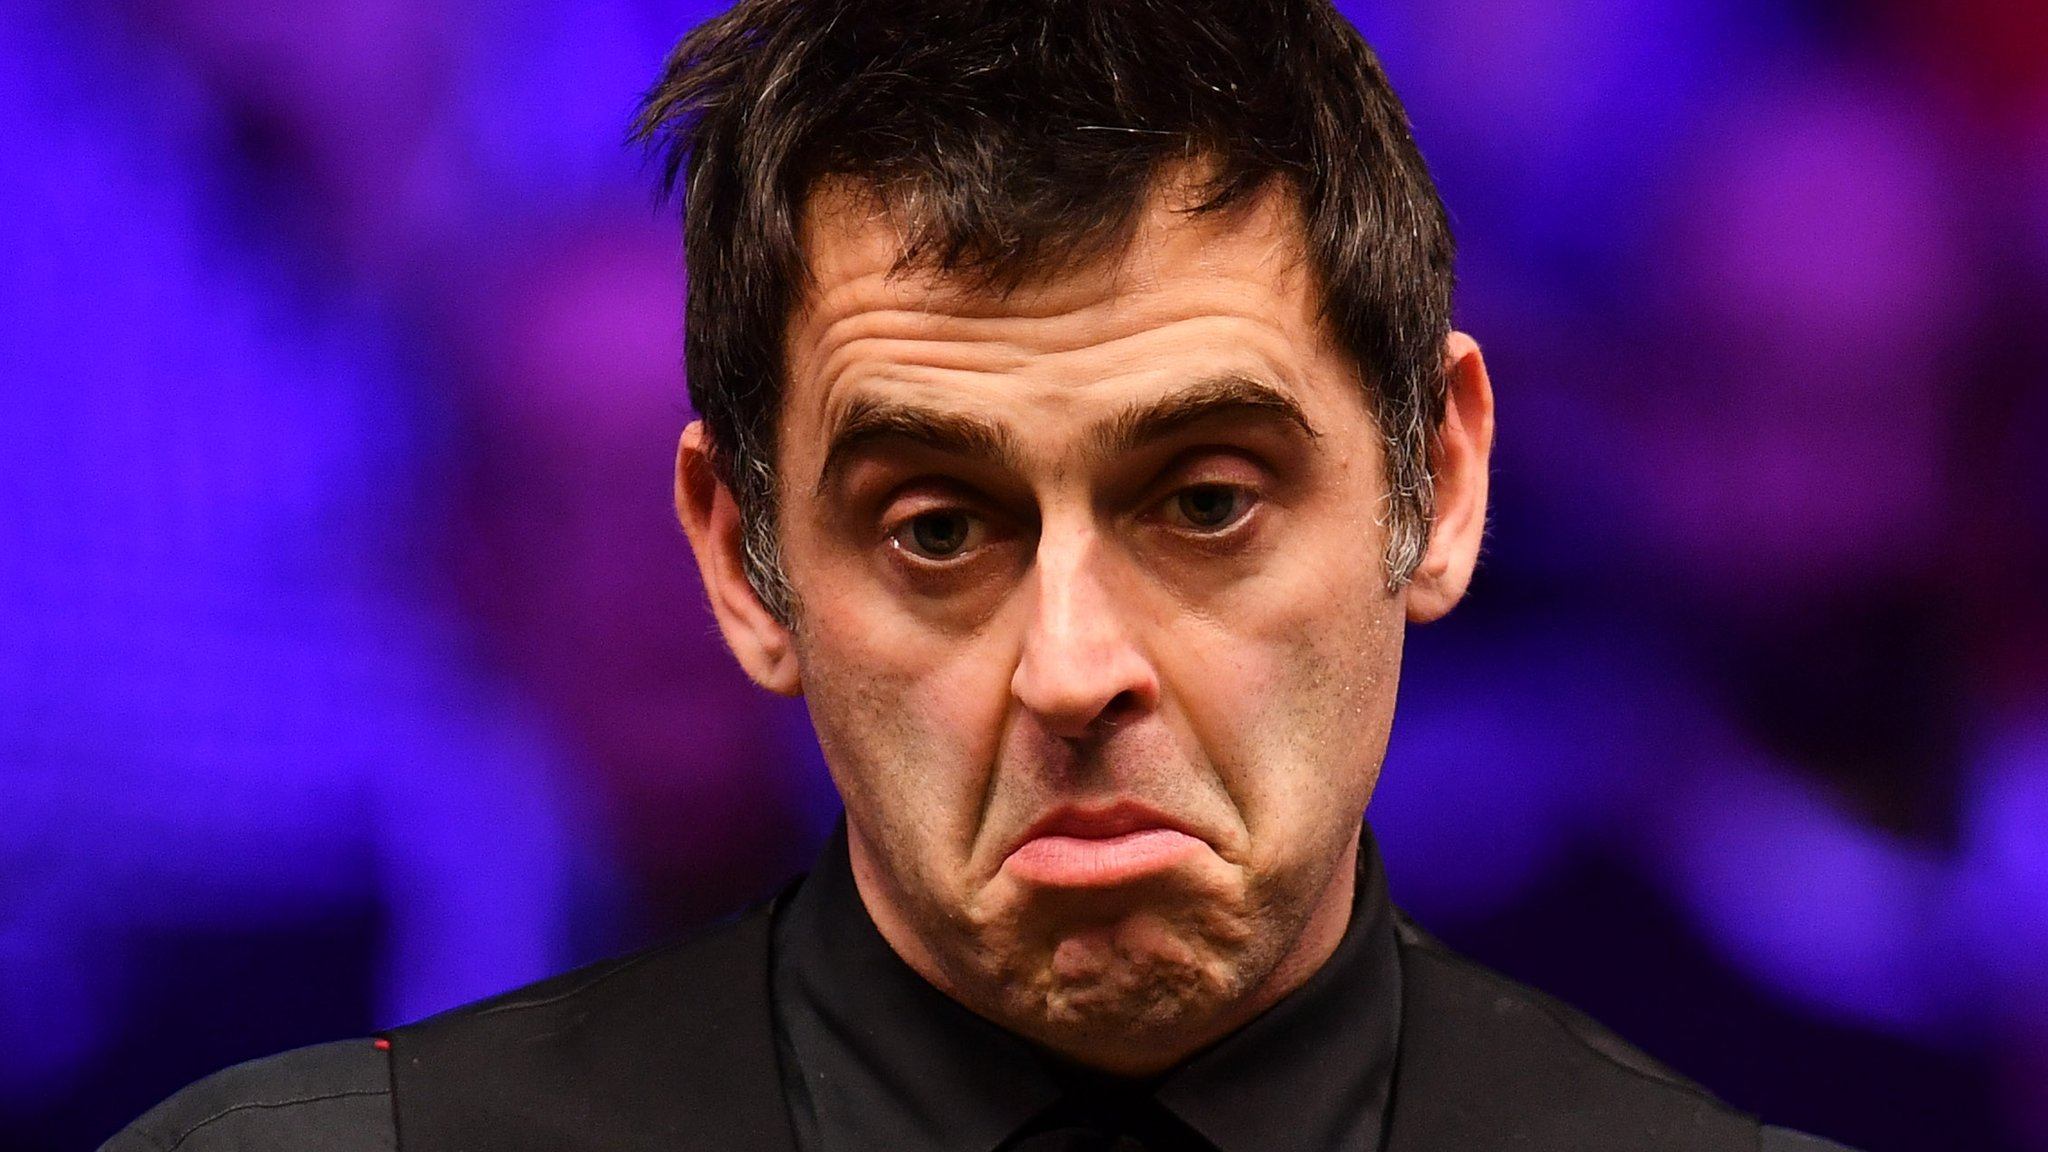 Ronnie O'Sullivan youngest 147 record beaten by amateur Sean Maddocks